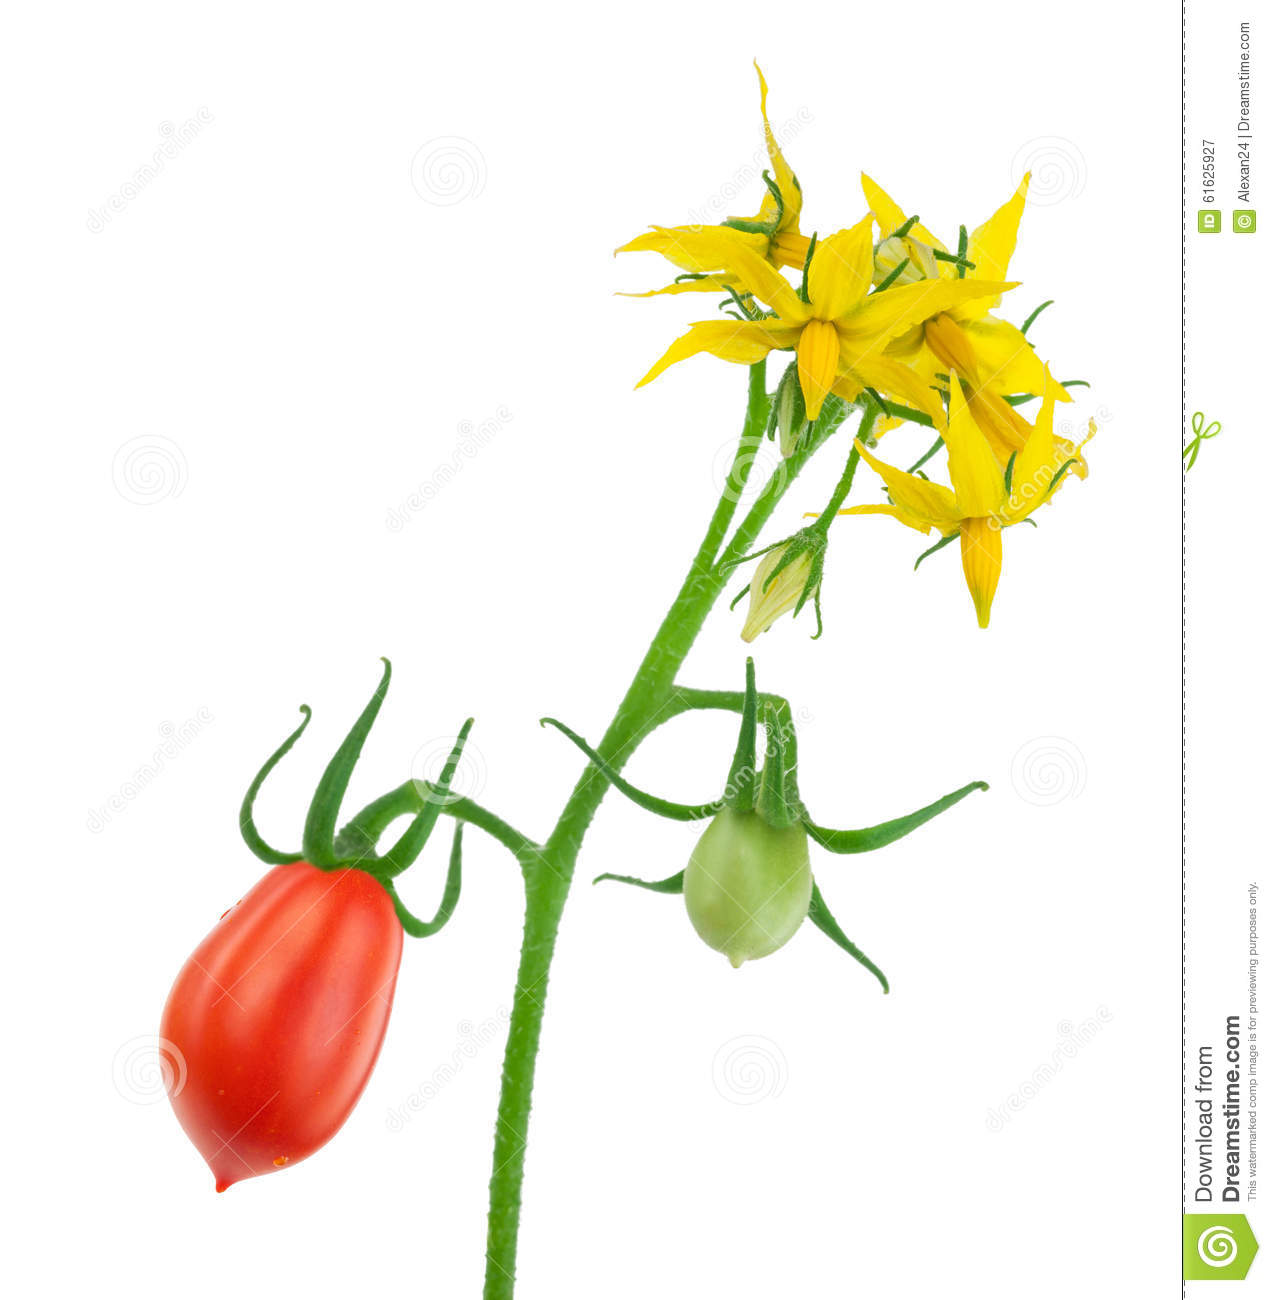 hight resolution of  tomato flower diagram tomato plant flower with red and green tomatoes stock